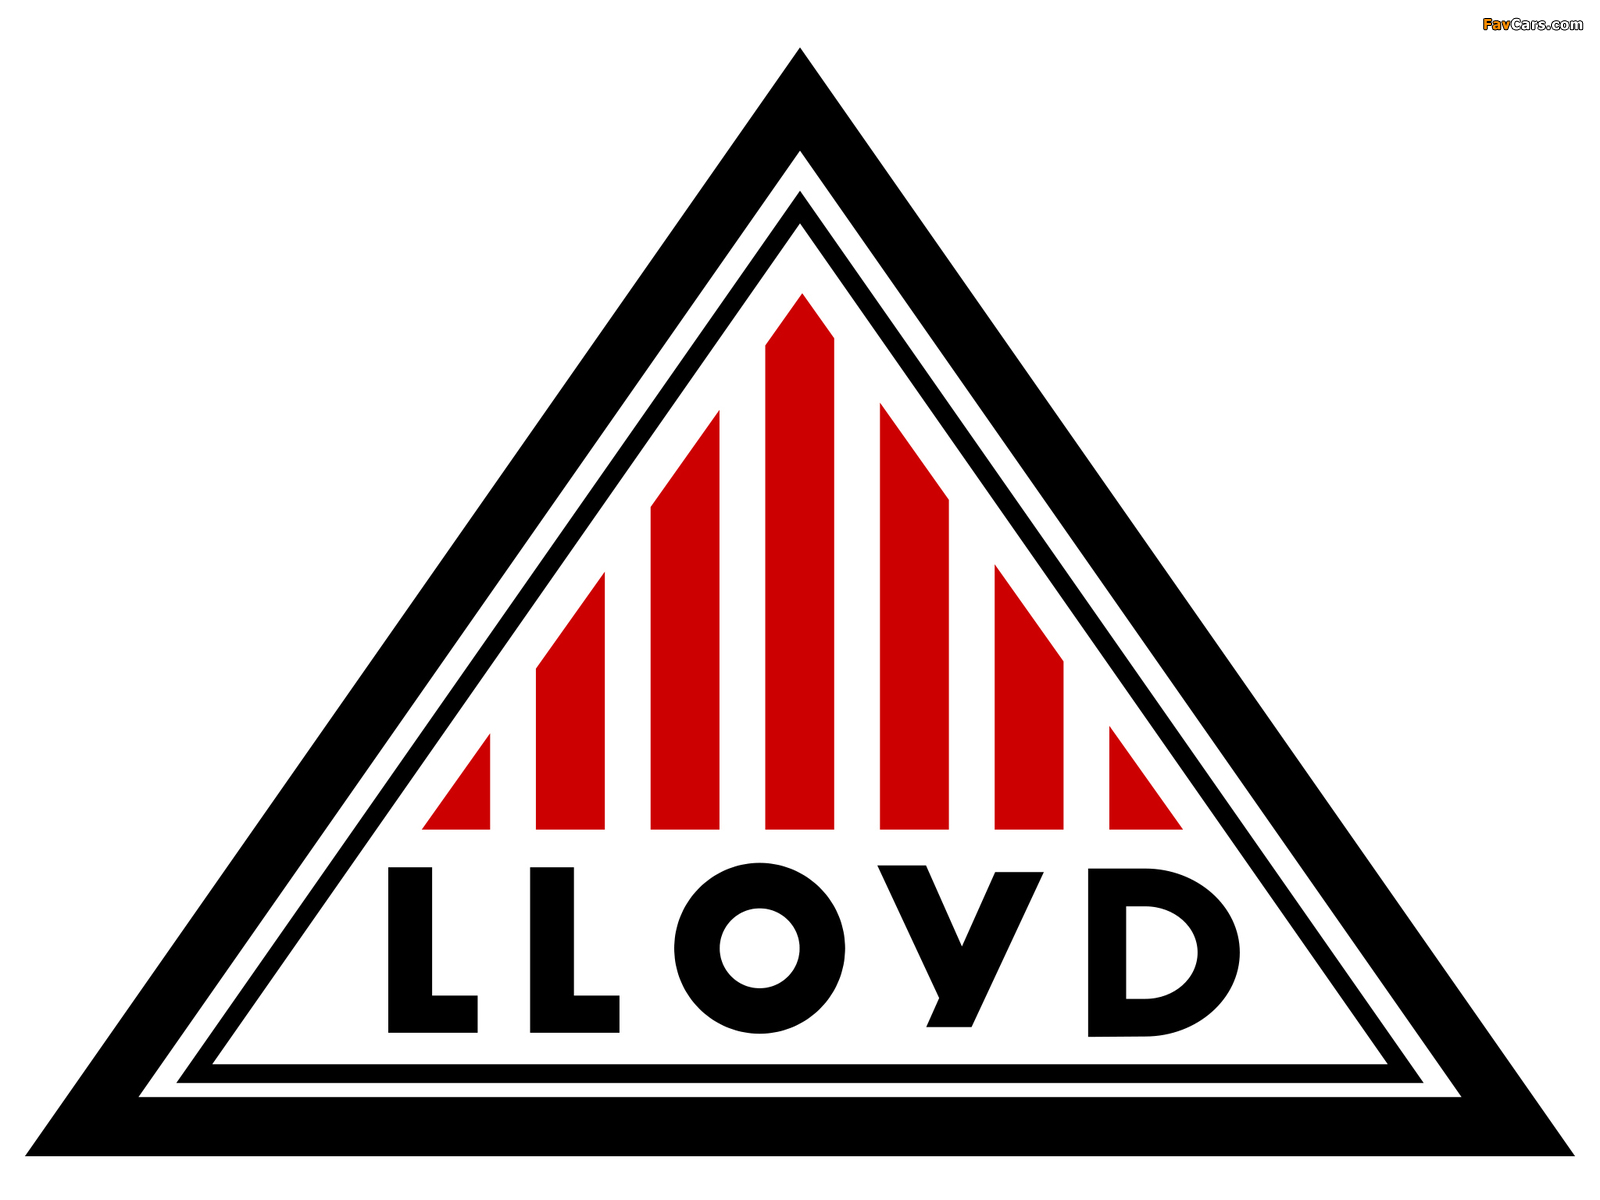 Lloyd wallpapers (1600 x 1200)